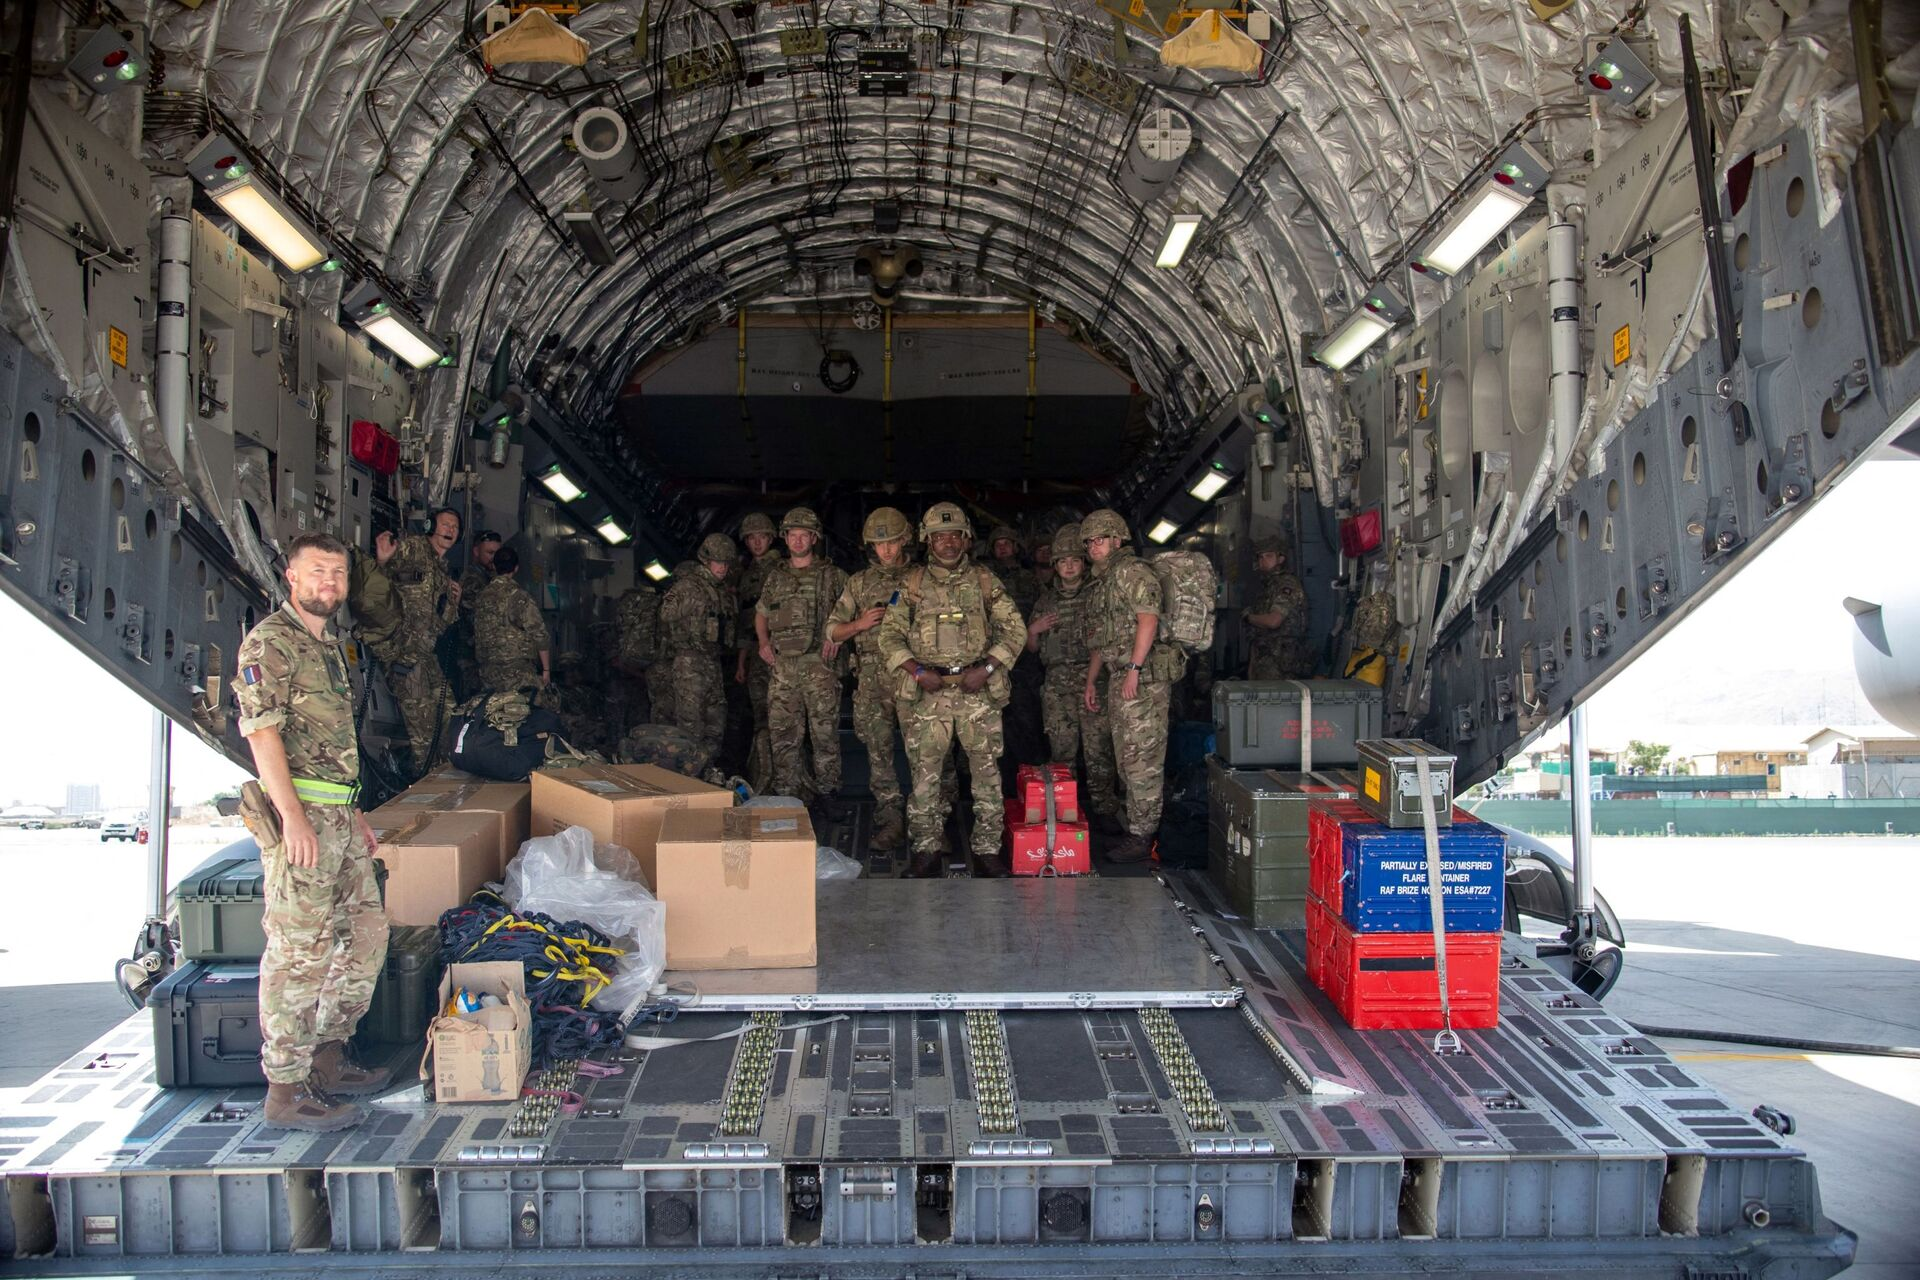 A handout picture taken and released by the British Ministry of Defence (MOD) on August 15, 2021 shows members of the British Army, from 16 Air Assault Brigade, as they disembark from an RAF Voyager aircraft after landing in Kabul, Afghanistan, to assist in evacuating British nationals and entitled persons as part of Operation PITTING - Sputnik International, 1920, 07.09.2021